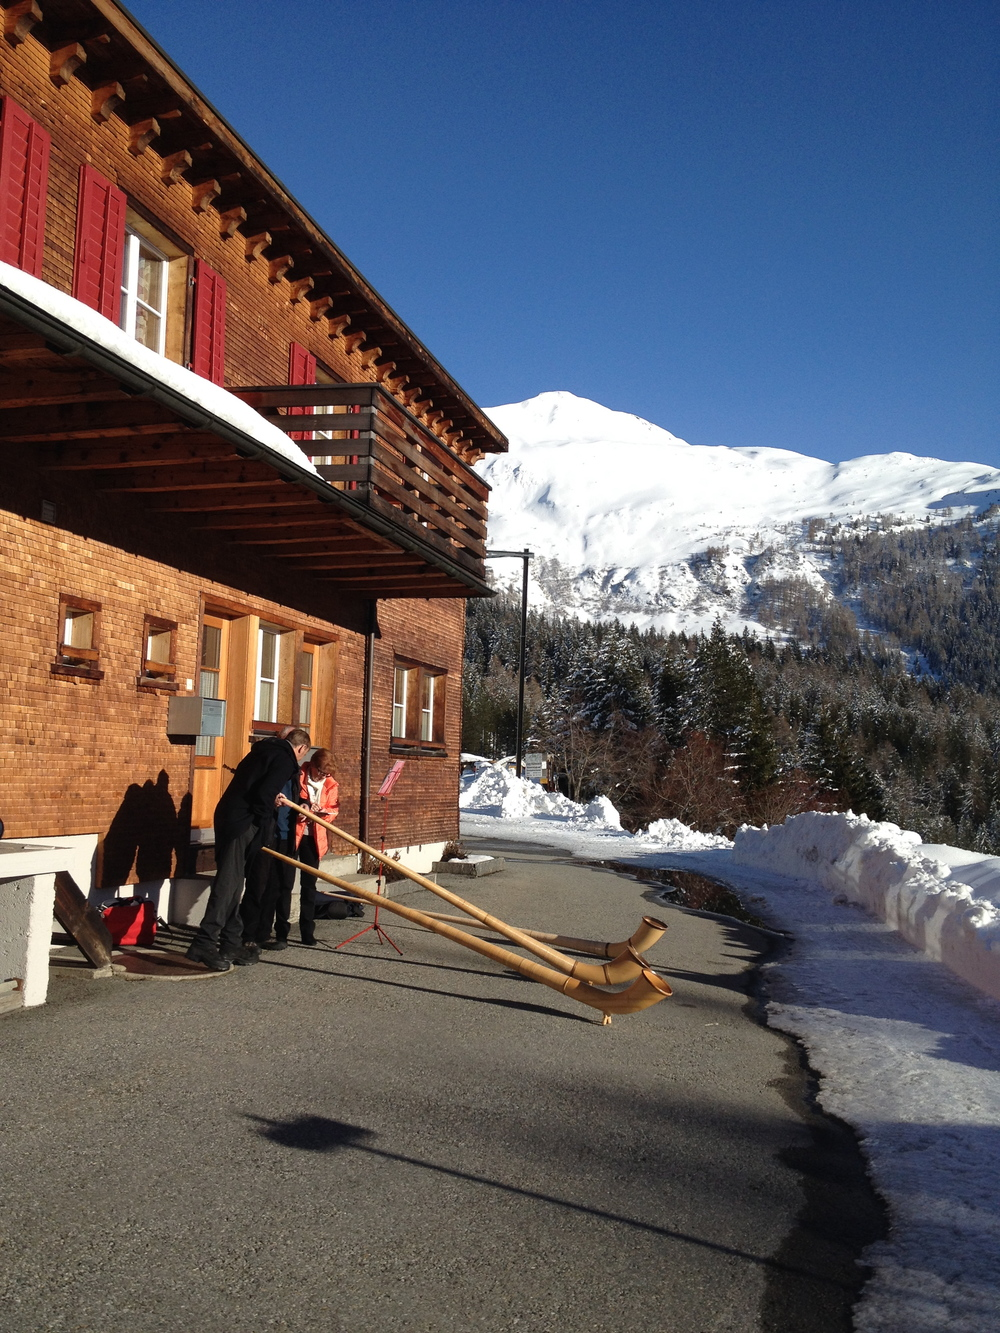 This was happening next to our hotel in Davos; sunshine, alps, and of course some alphorns!